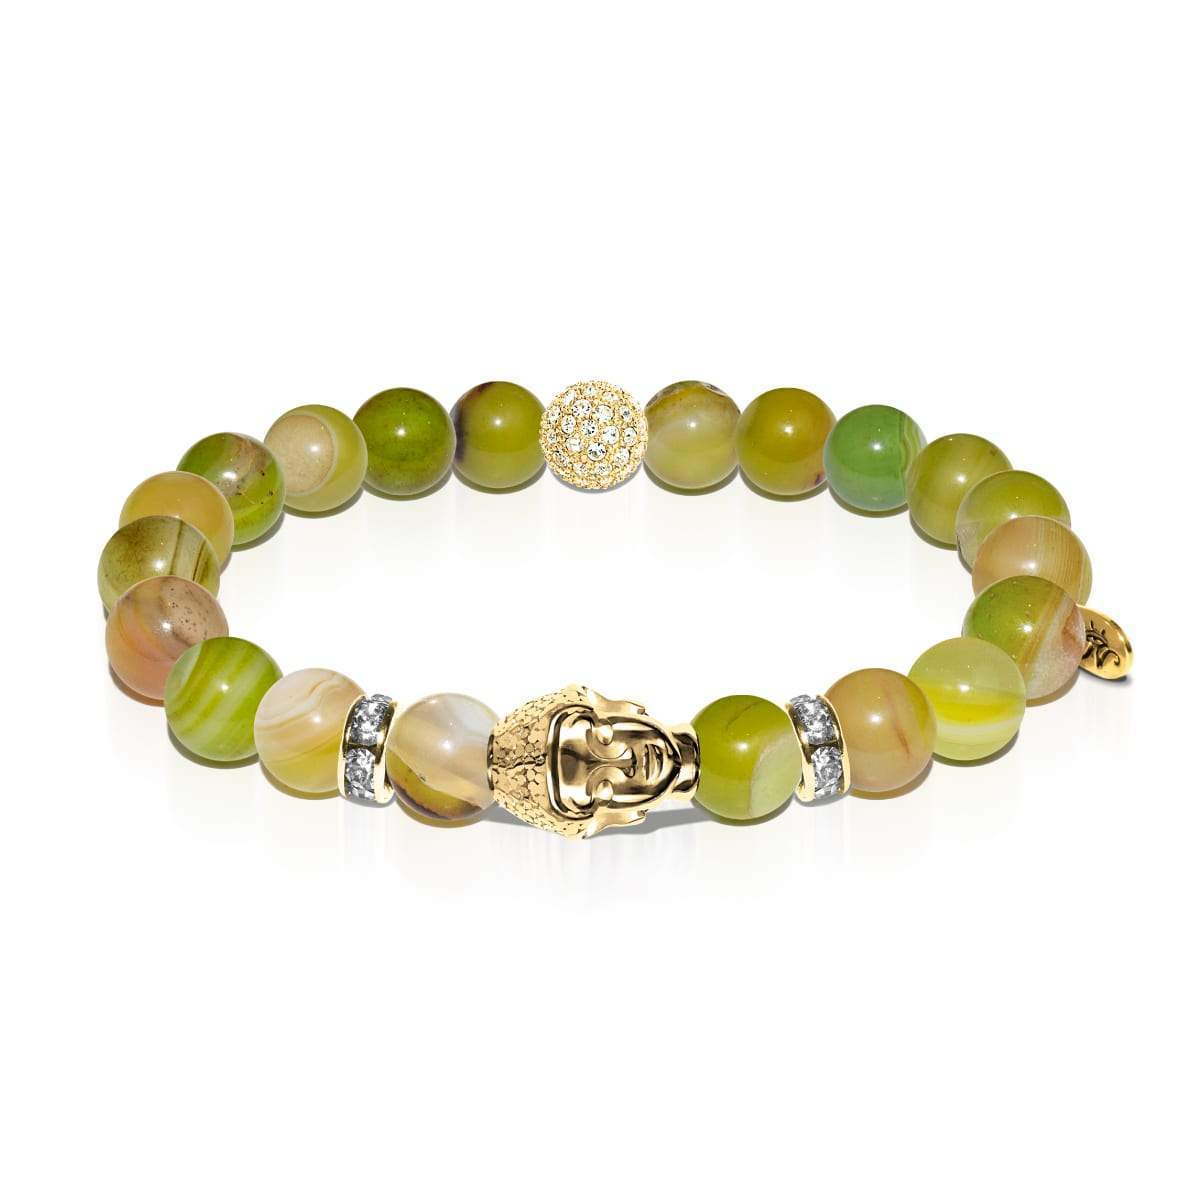 Metaphysical | Gold Buddha | Olive Green Striped Agate Bracelet